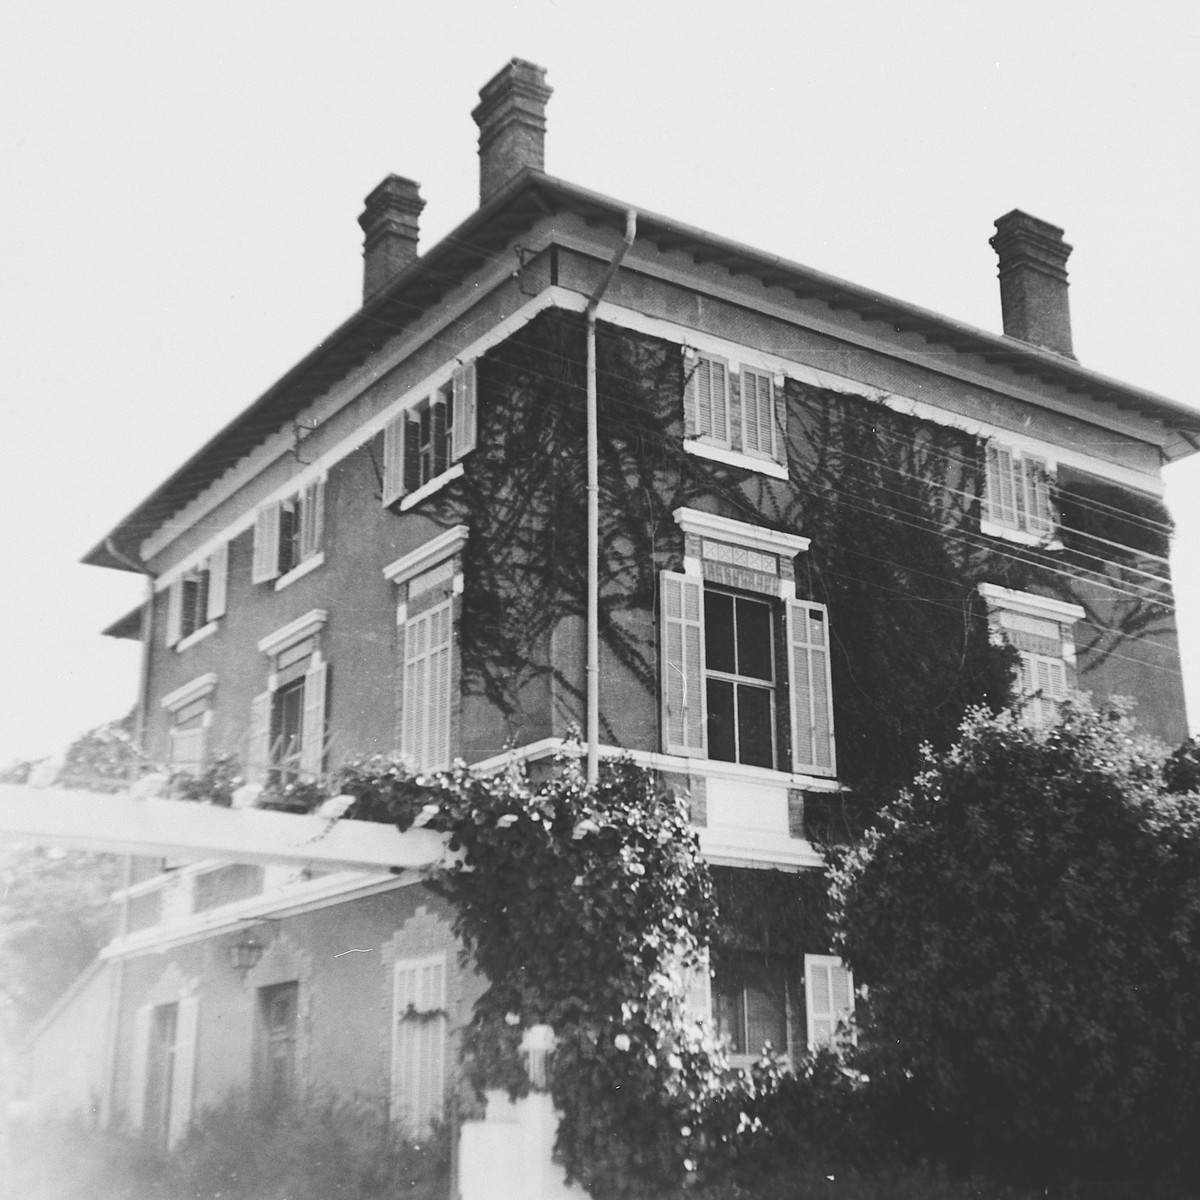 Exterior view of La Feuille (Feuilleraie) which had served as an OSE children's home during the war.